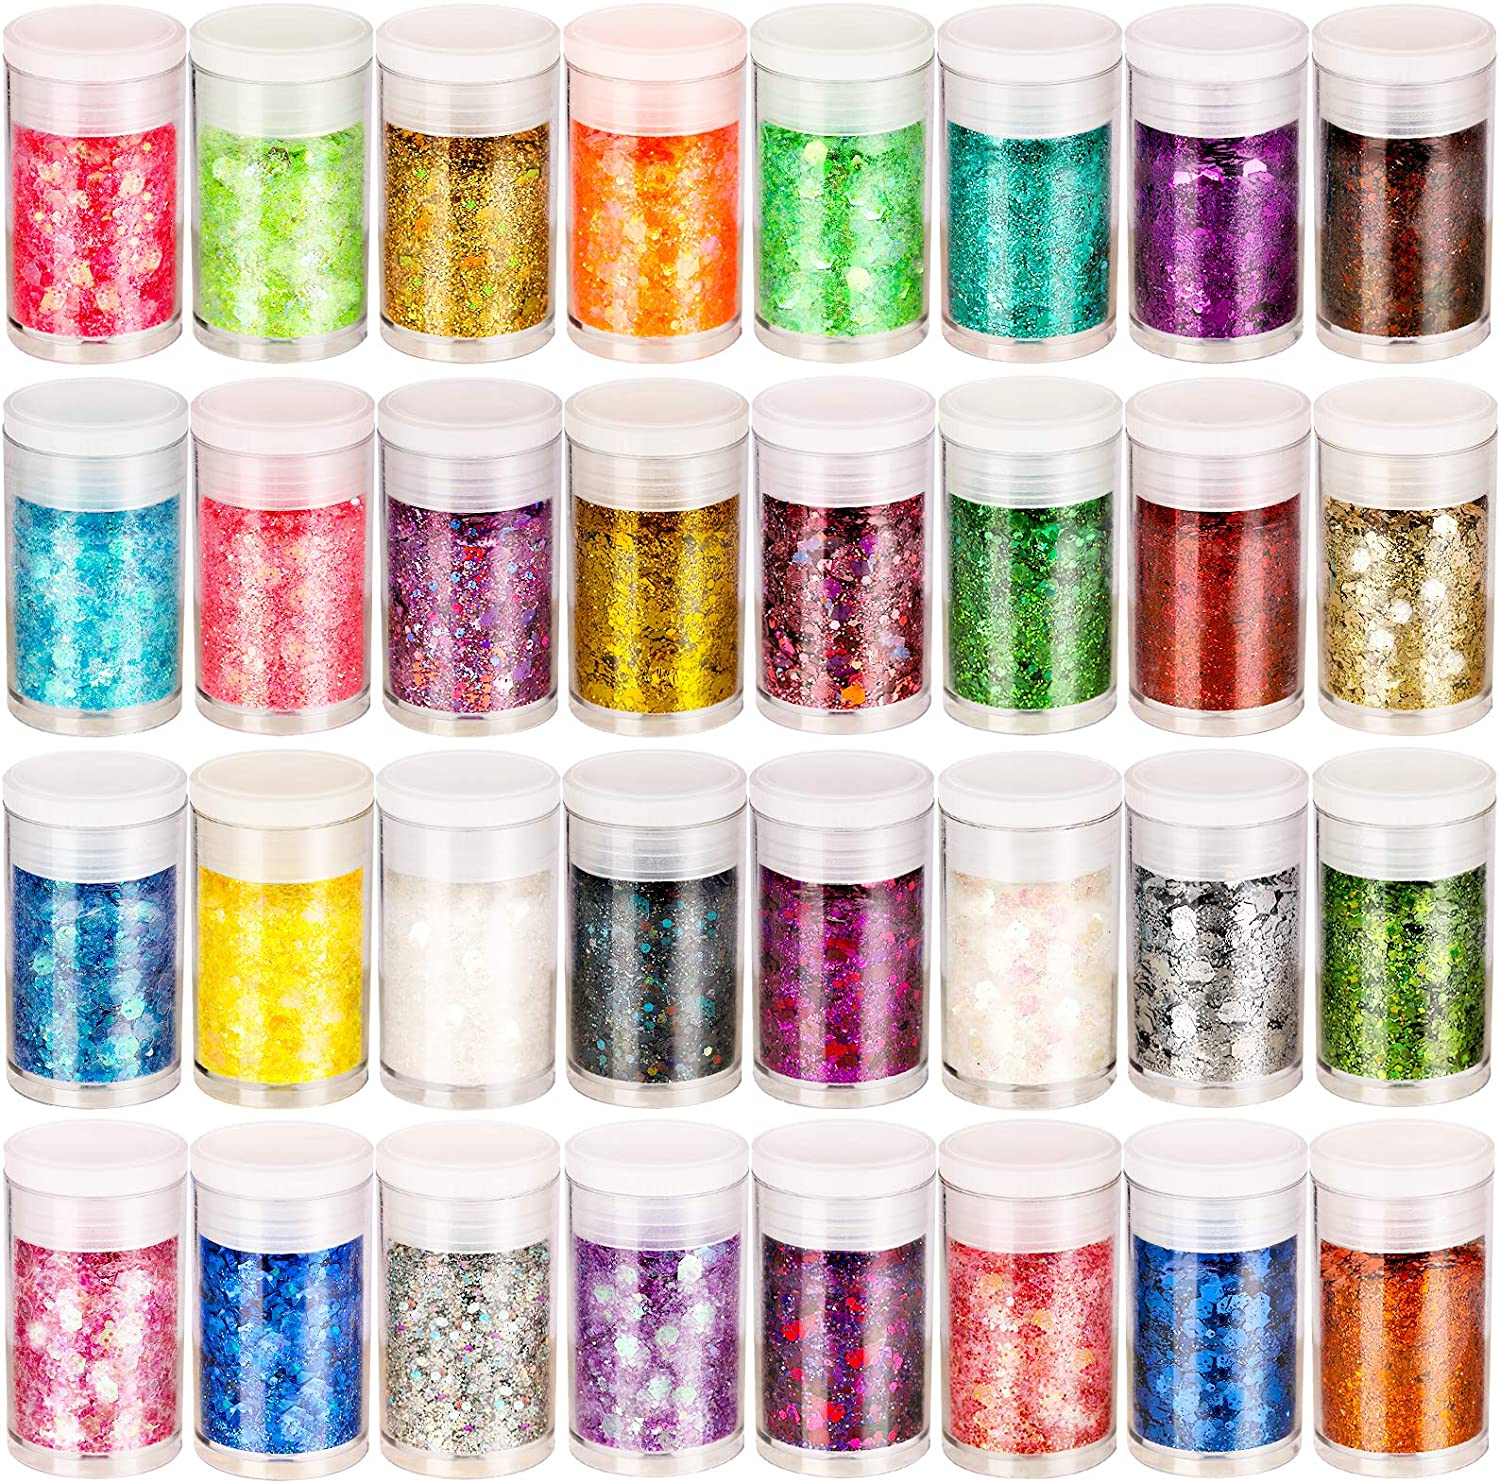 Holographic Chunky Glitter, Set of 32, LEOBRO Craft Glitter for Resin Art Crafts, Cosmetic Glitter for Nail Body Face Eye, Epoxy Resin Glitter Sequin Flake Sparkle for Slime Tumbler Jewelry Making